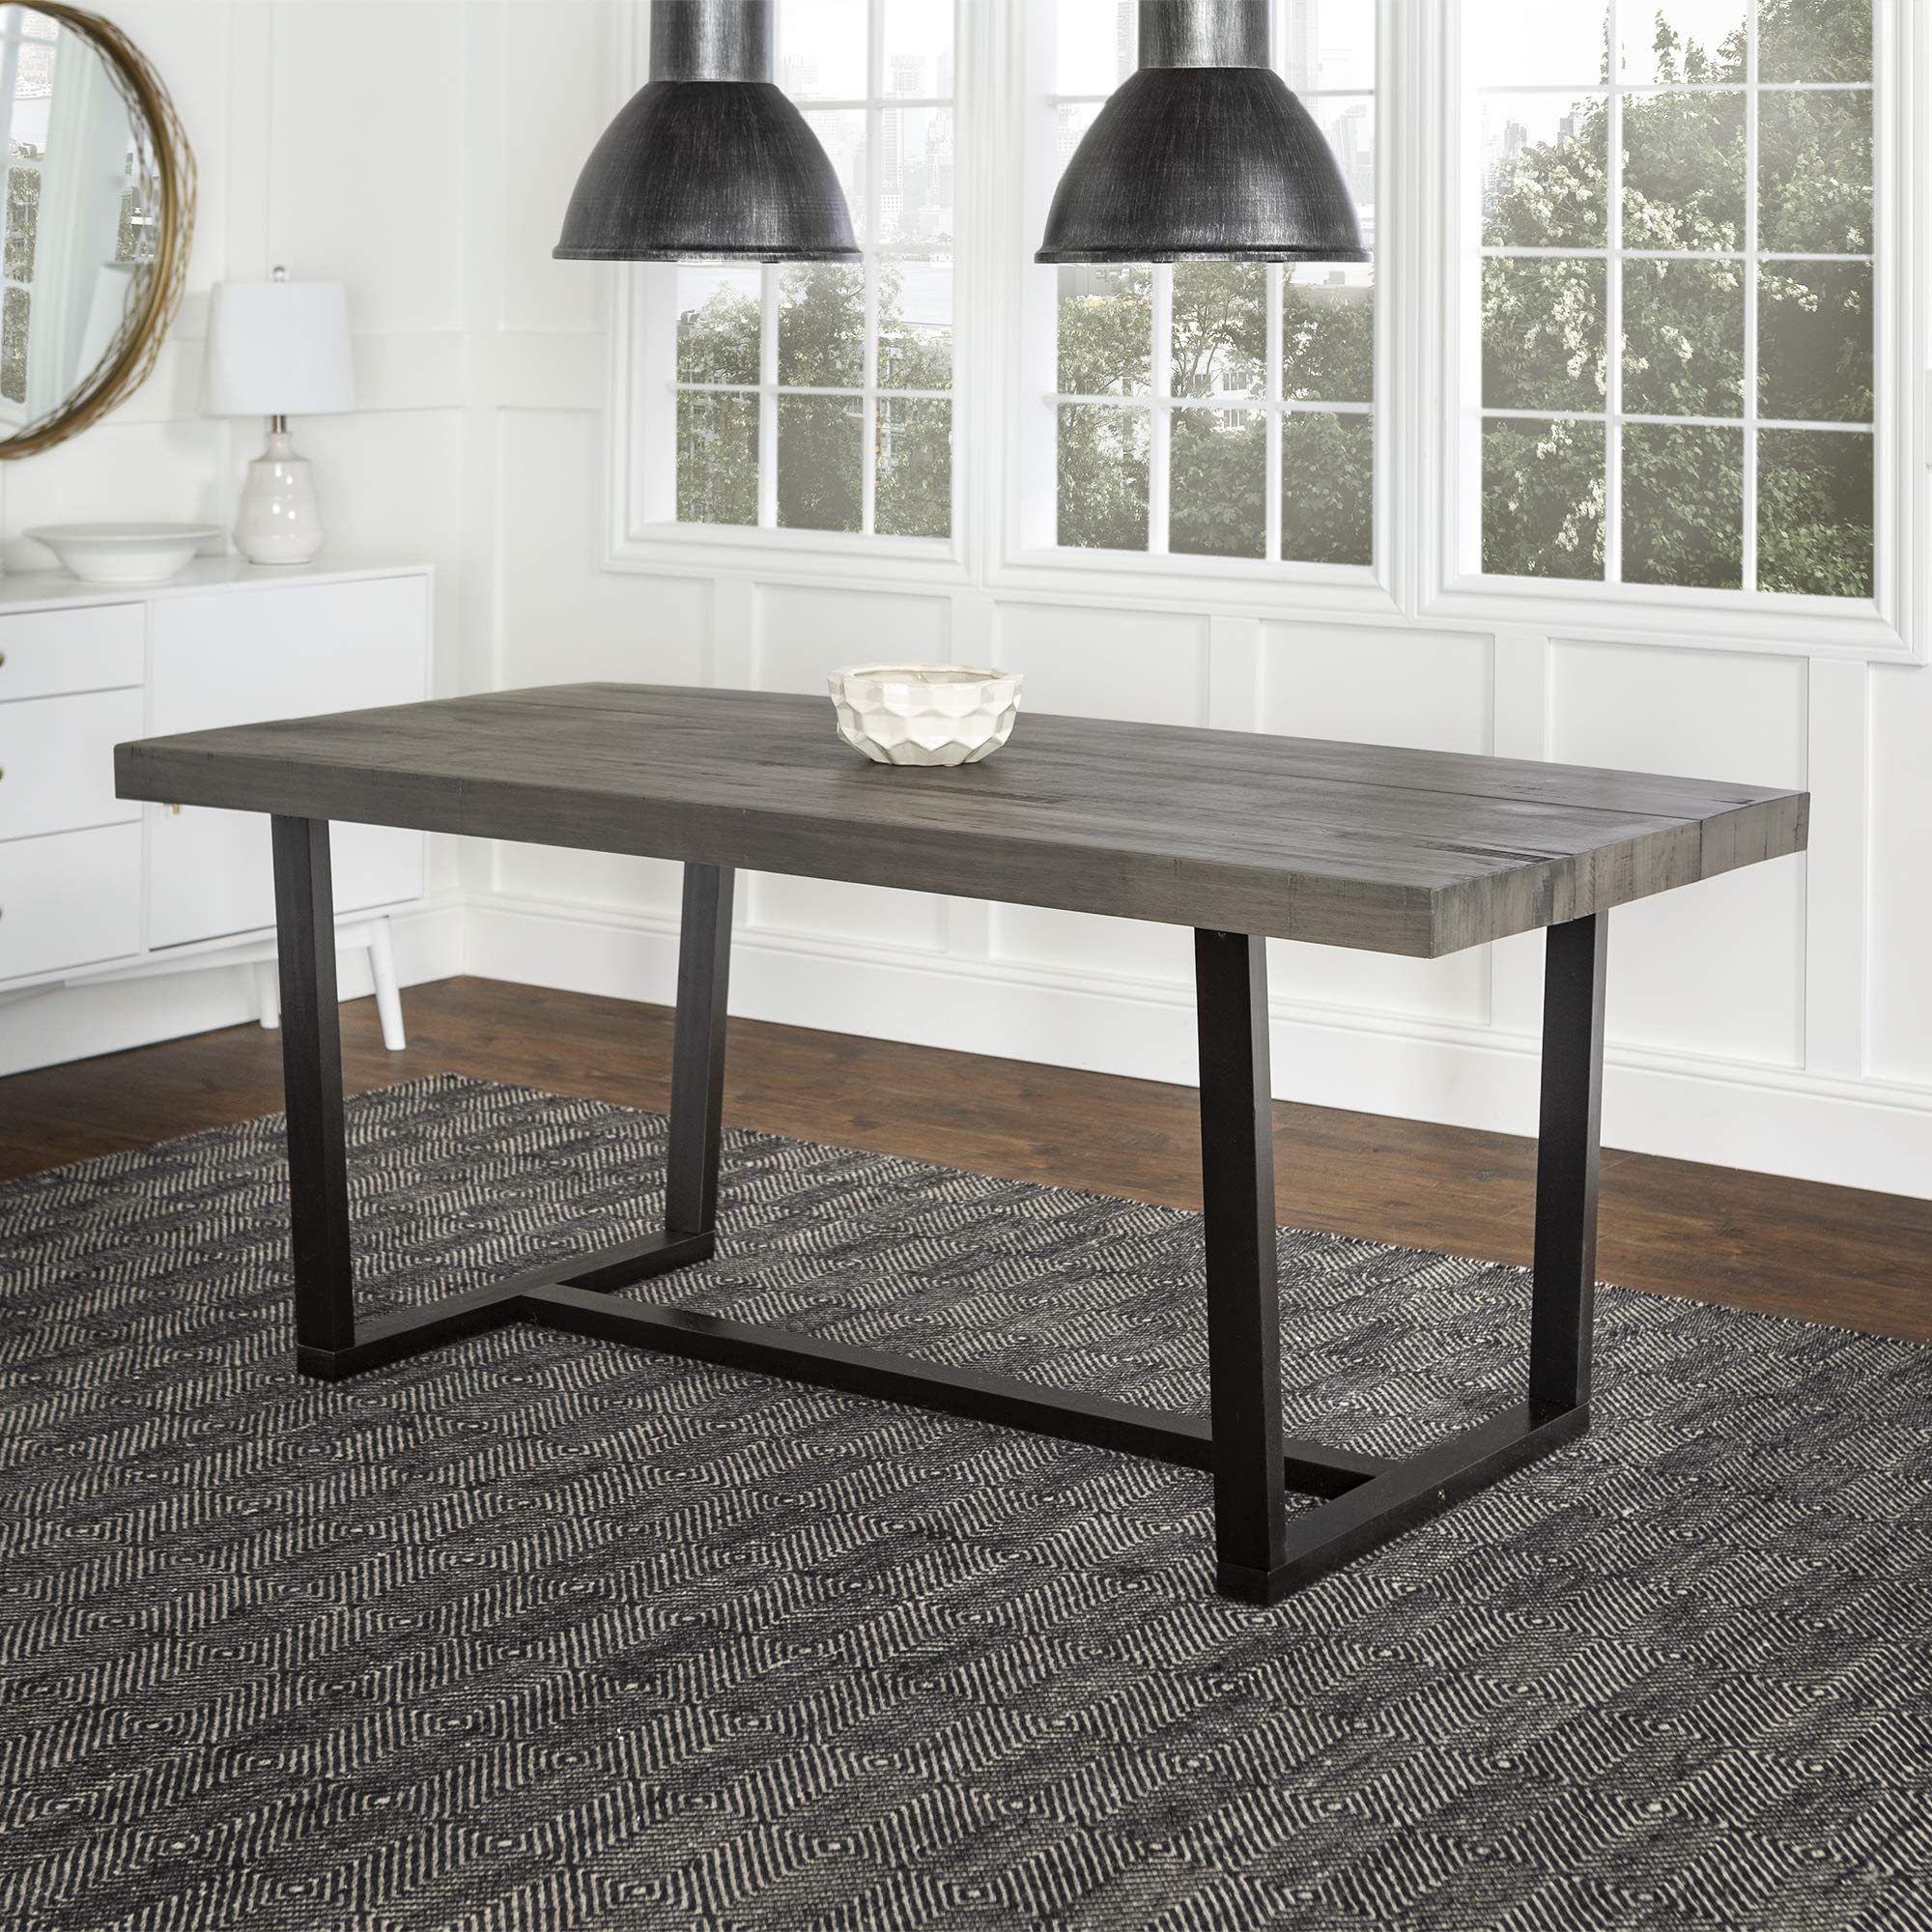 WE Furniture AZW72DSWGY Dining Table 72'' Grey by WE Furniture